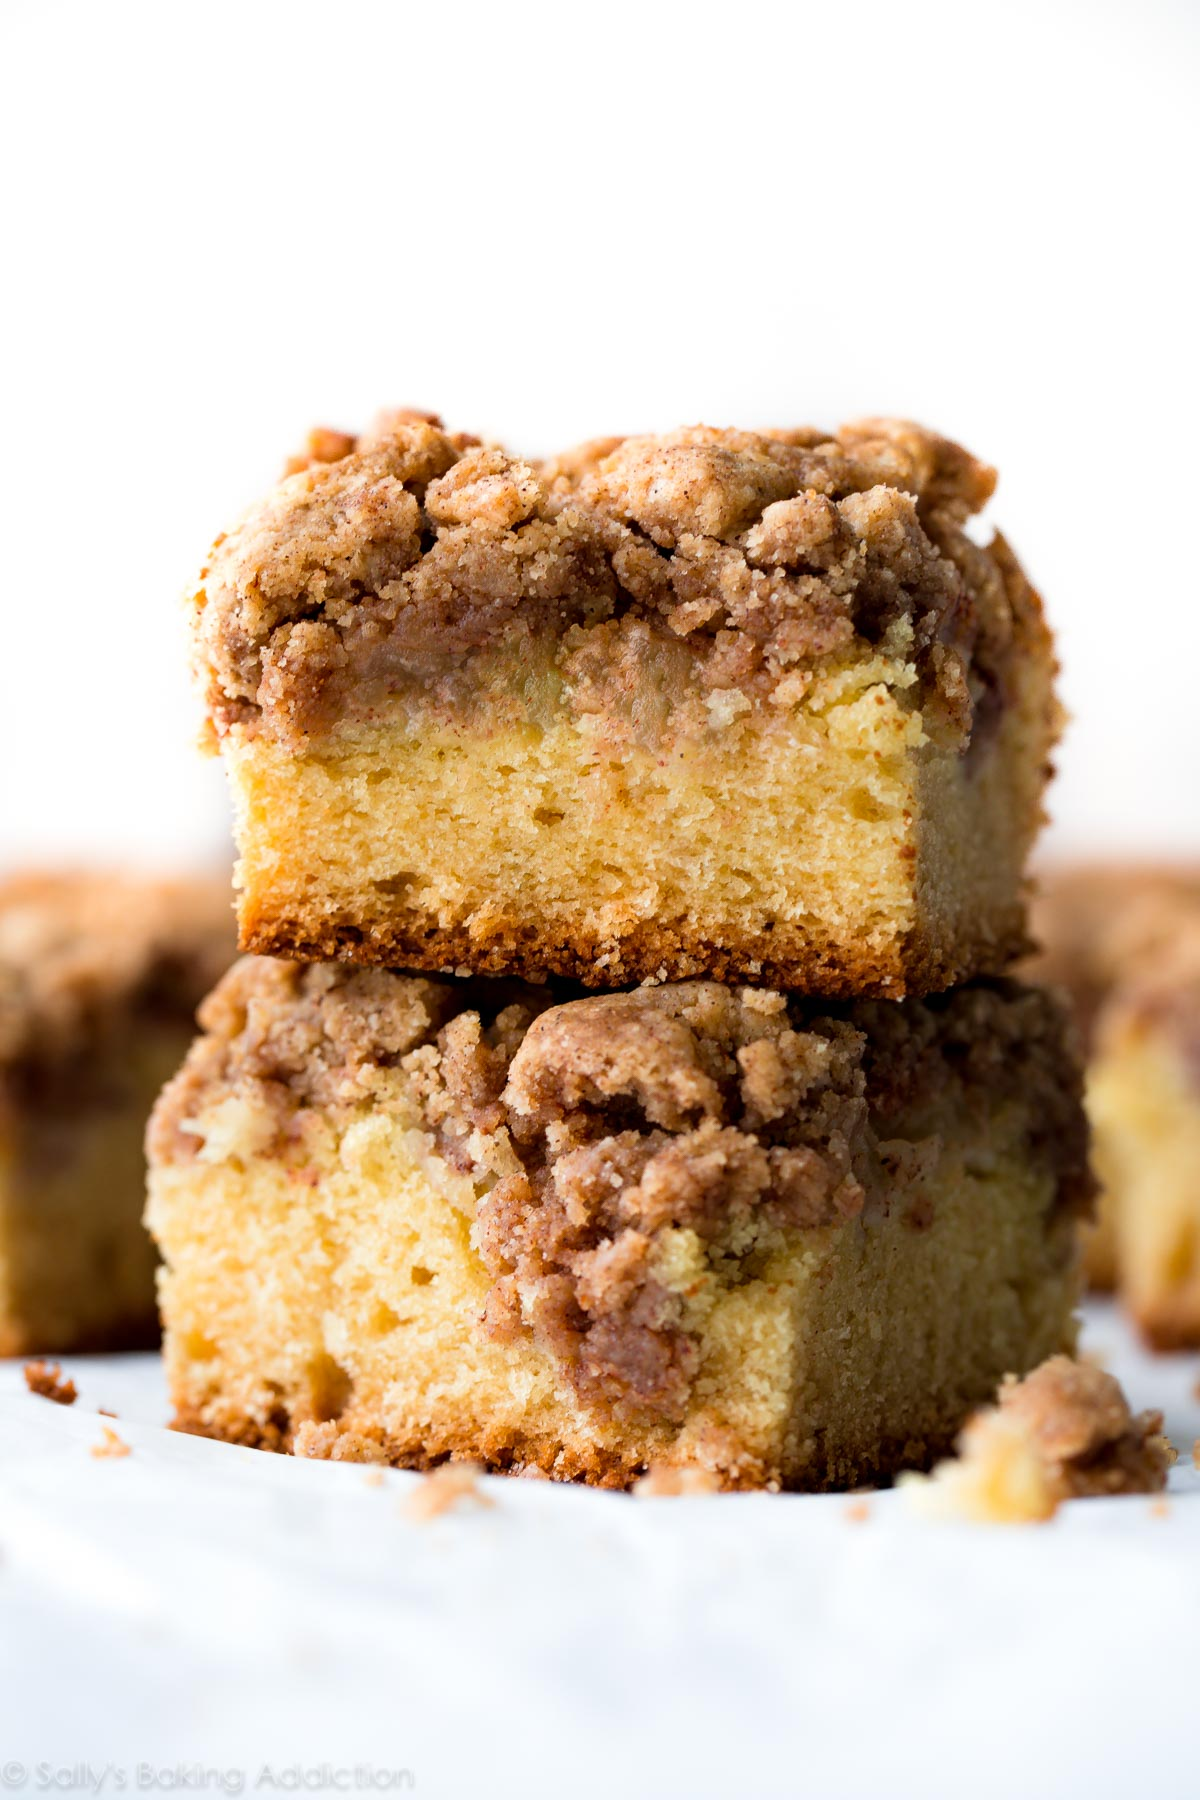 Crumb topping for crumb cake recipe